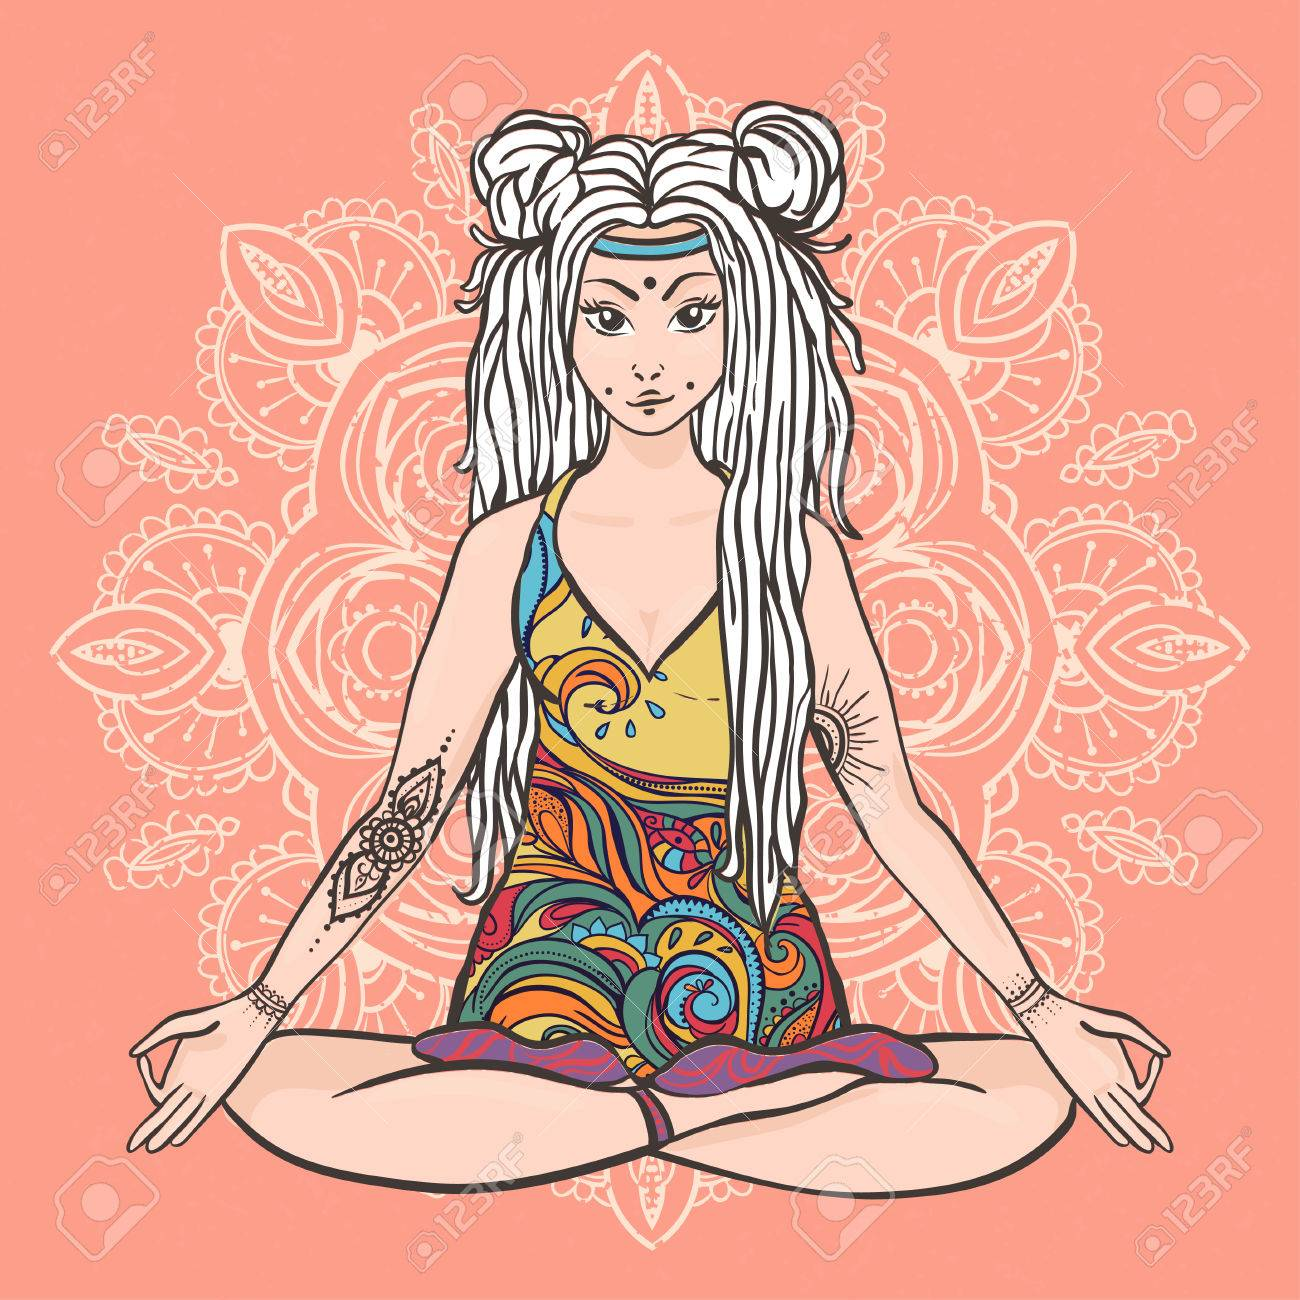 Hippie Girl With Dreadlocks Hippie Style Yoga Poses Love And Music With  Handwritten Fonts